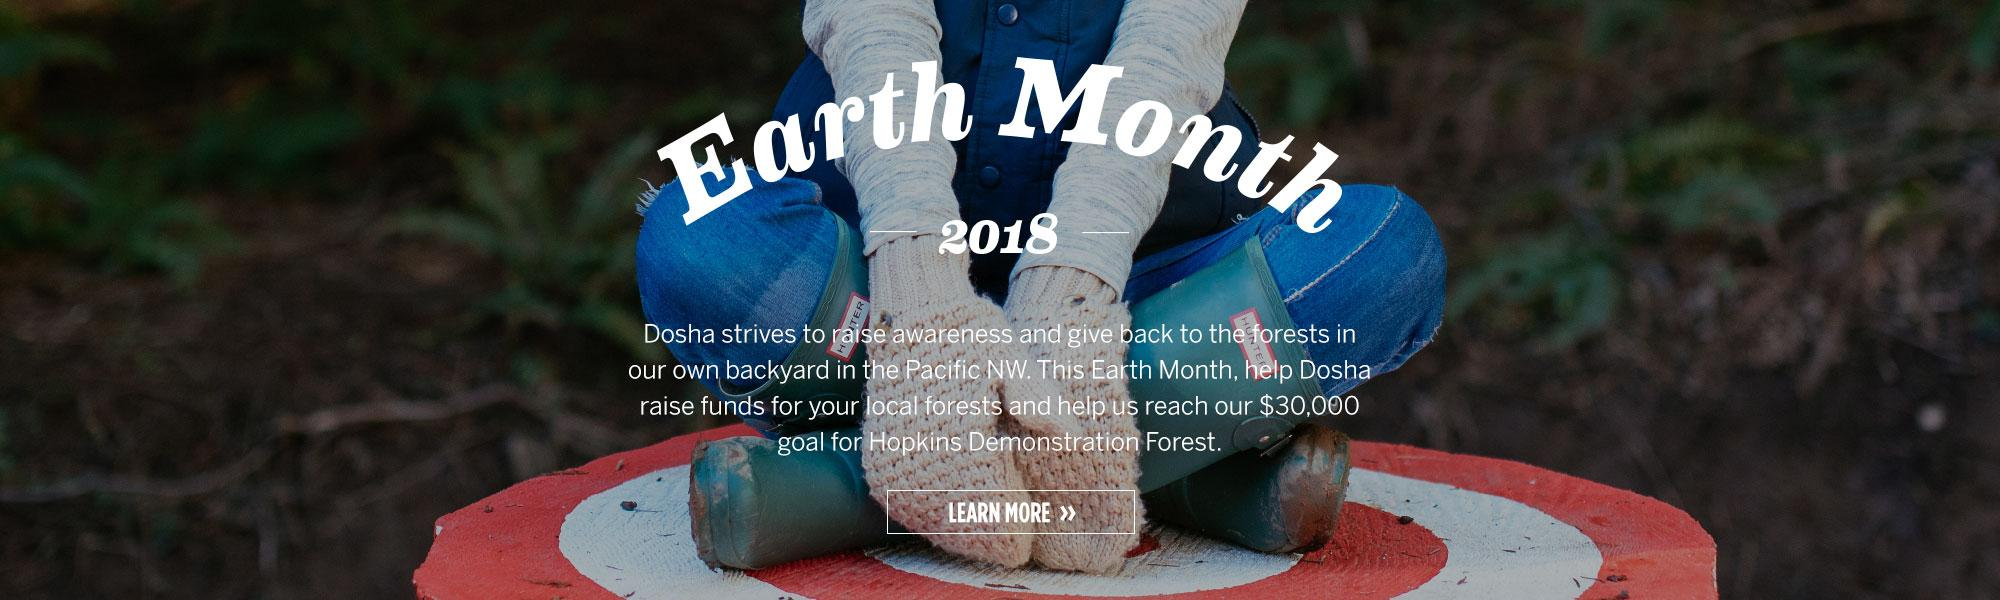 Dosha Salon Spa, Earth Month 2018, Community, Giving Back, Fundraising